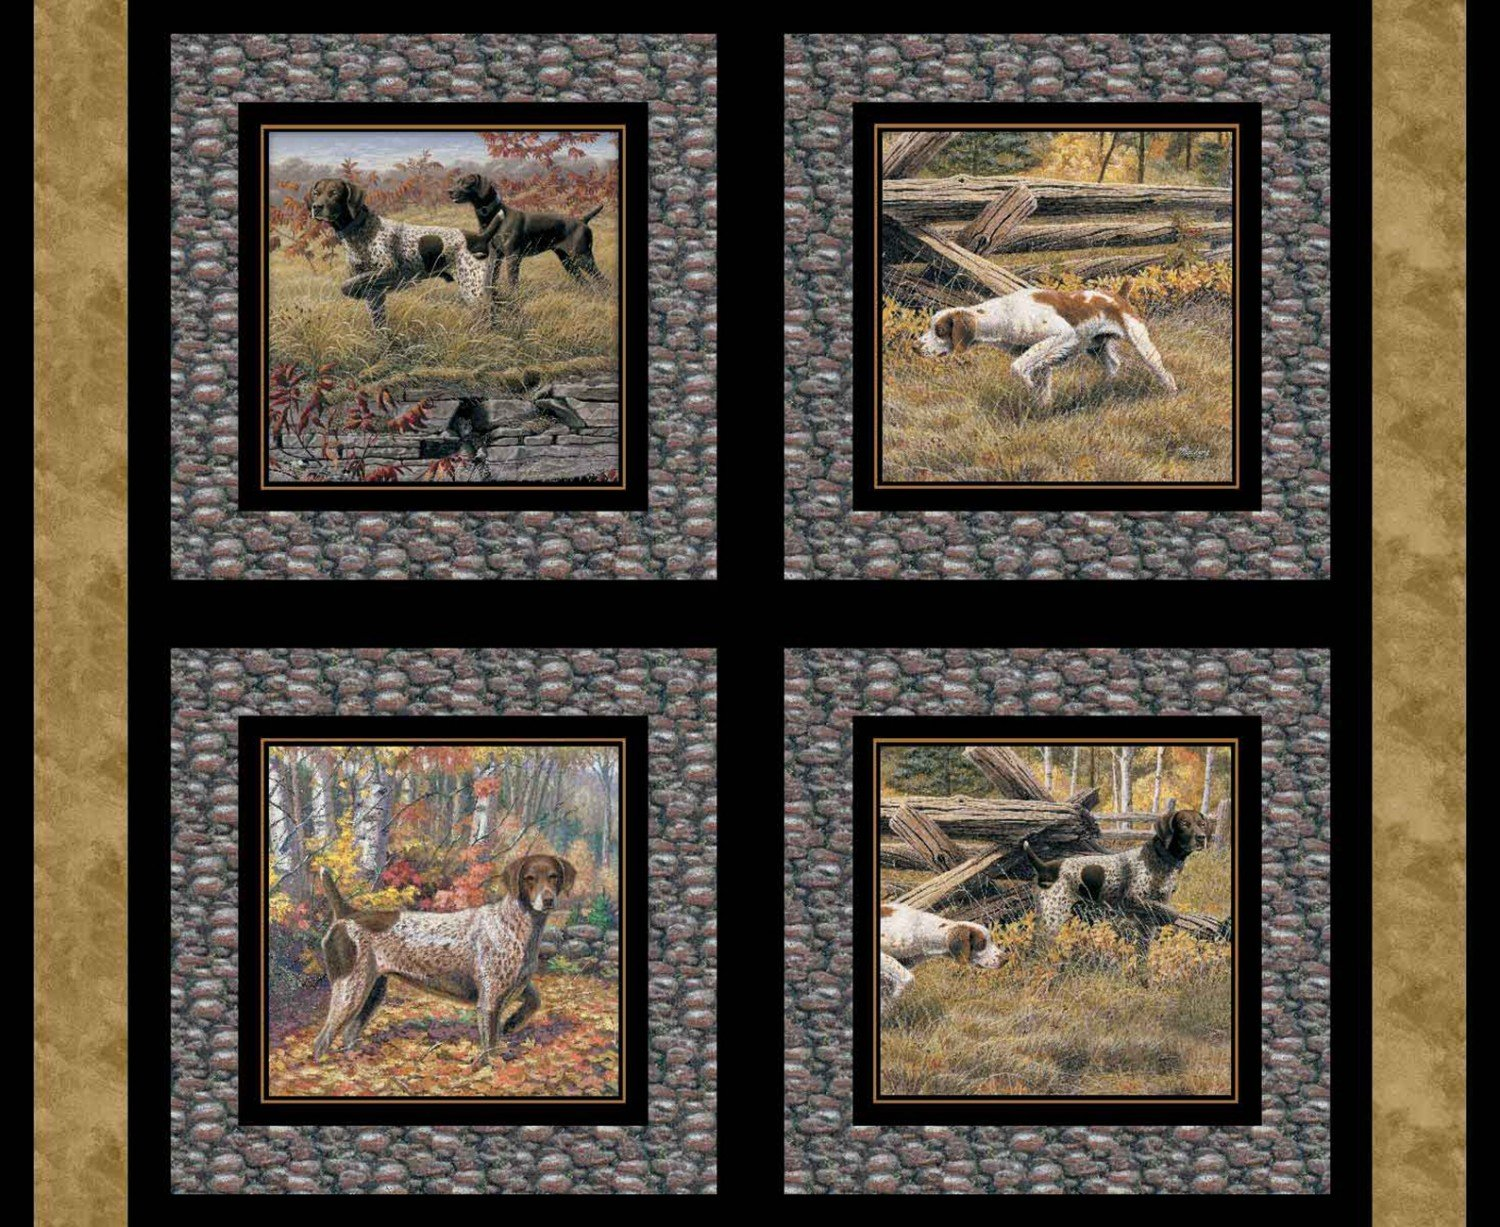 SC-Wild Wings Show Dogs 68445 Pillow Panel